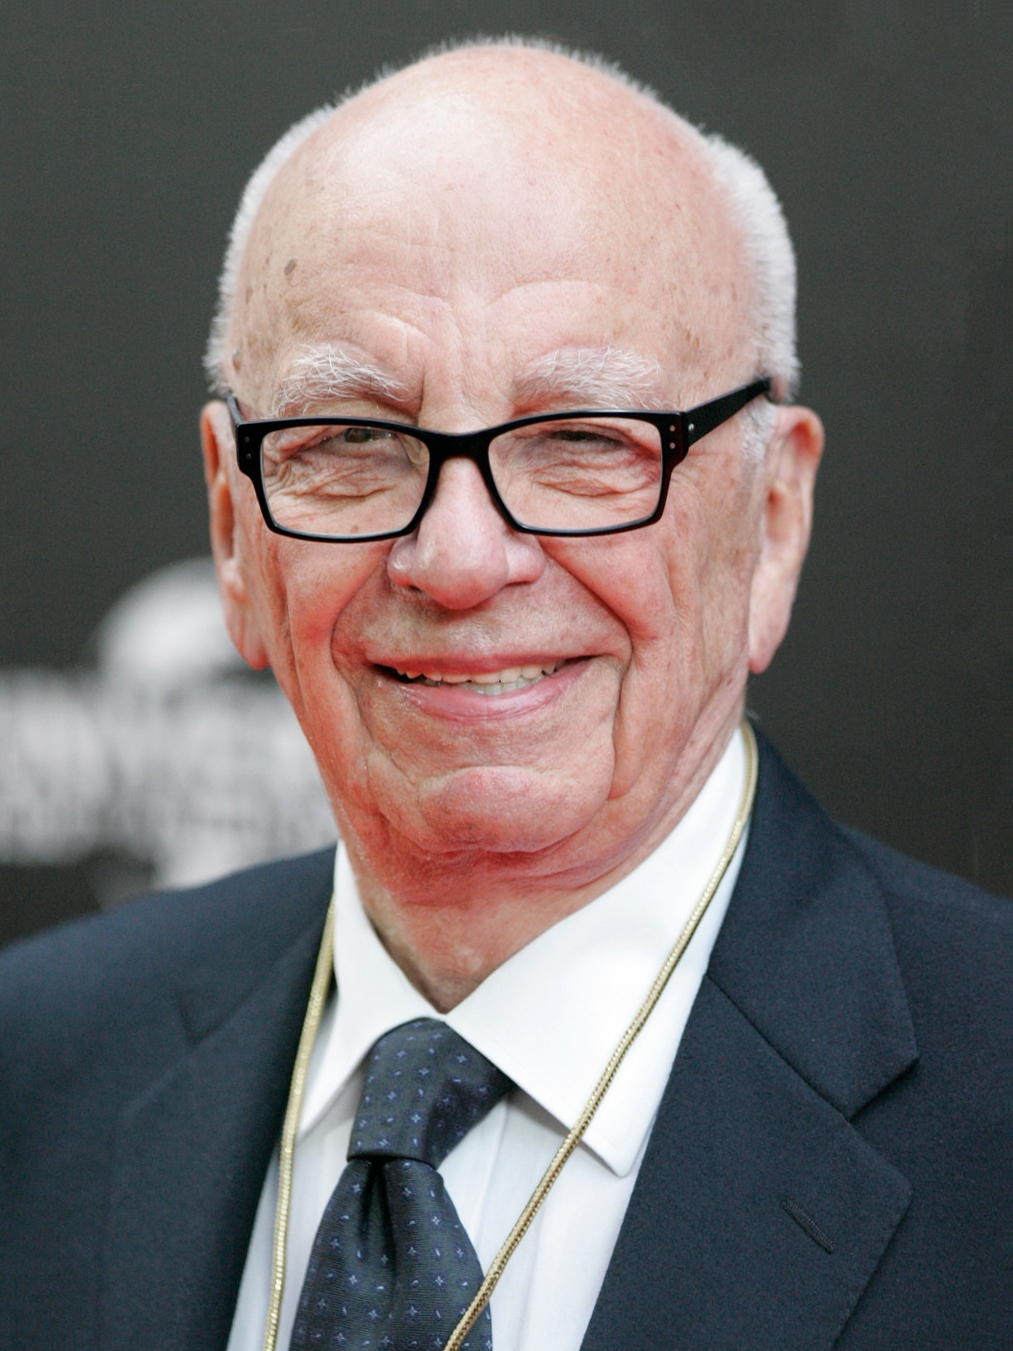 Rupert Murdoch earned a  million dollar salary - leaving the net worth at 14000 million in 2018